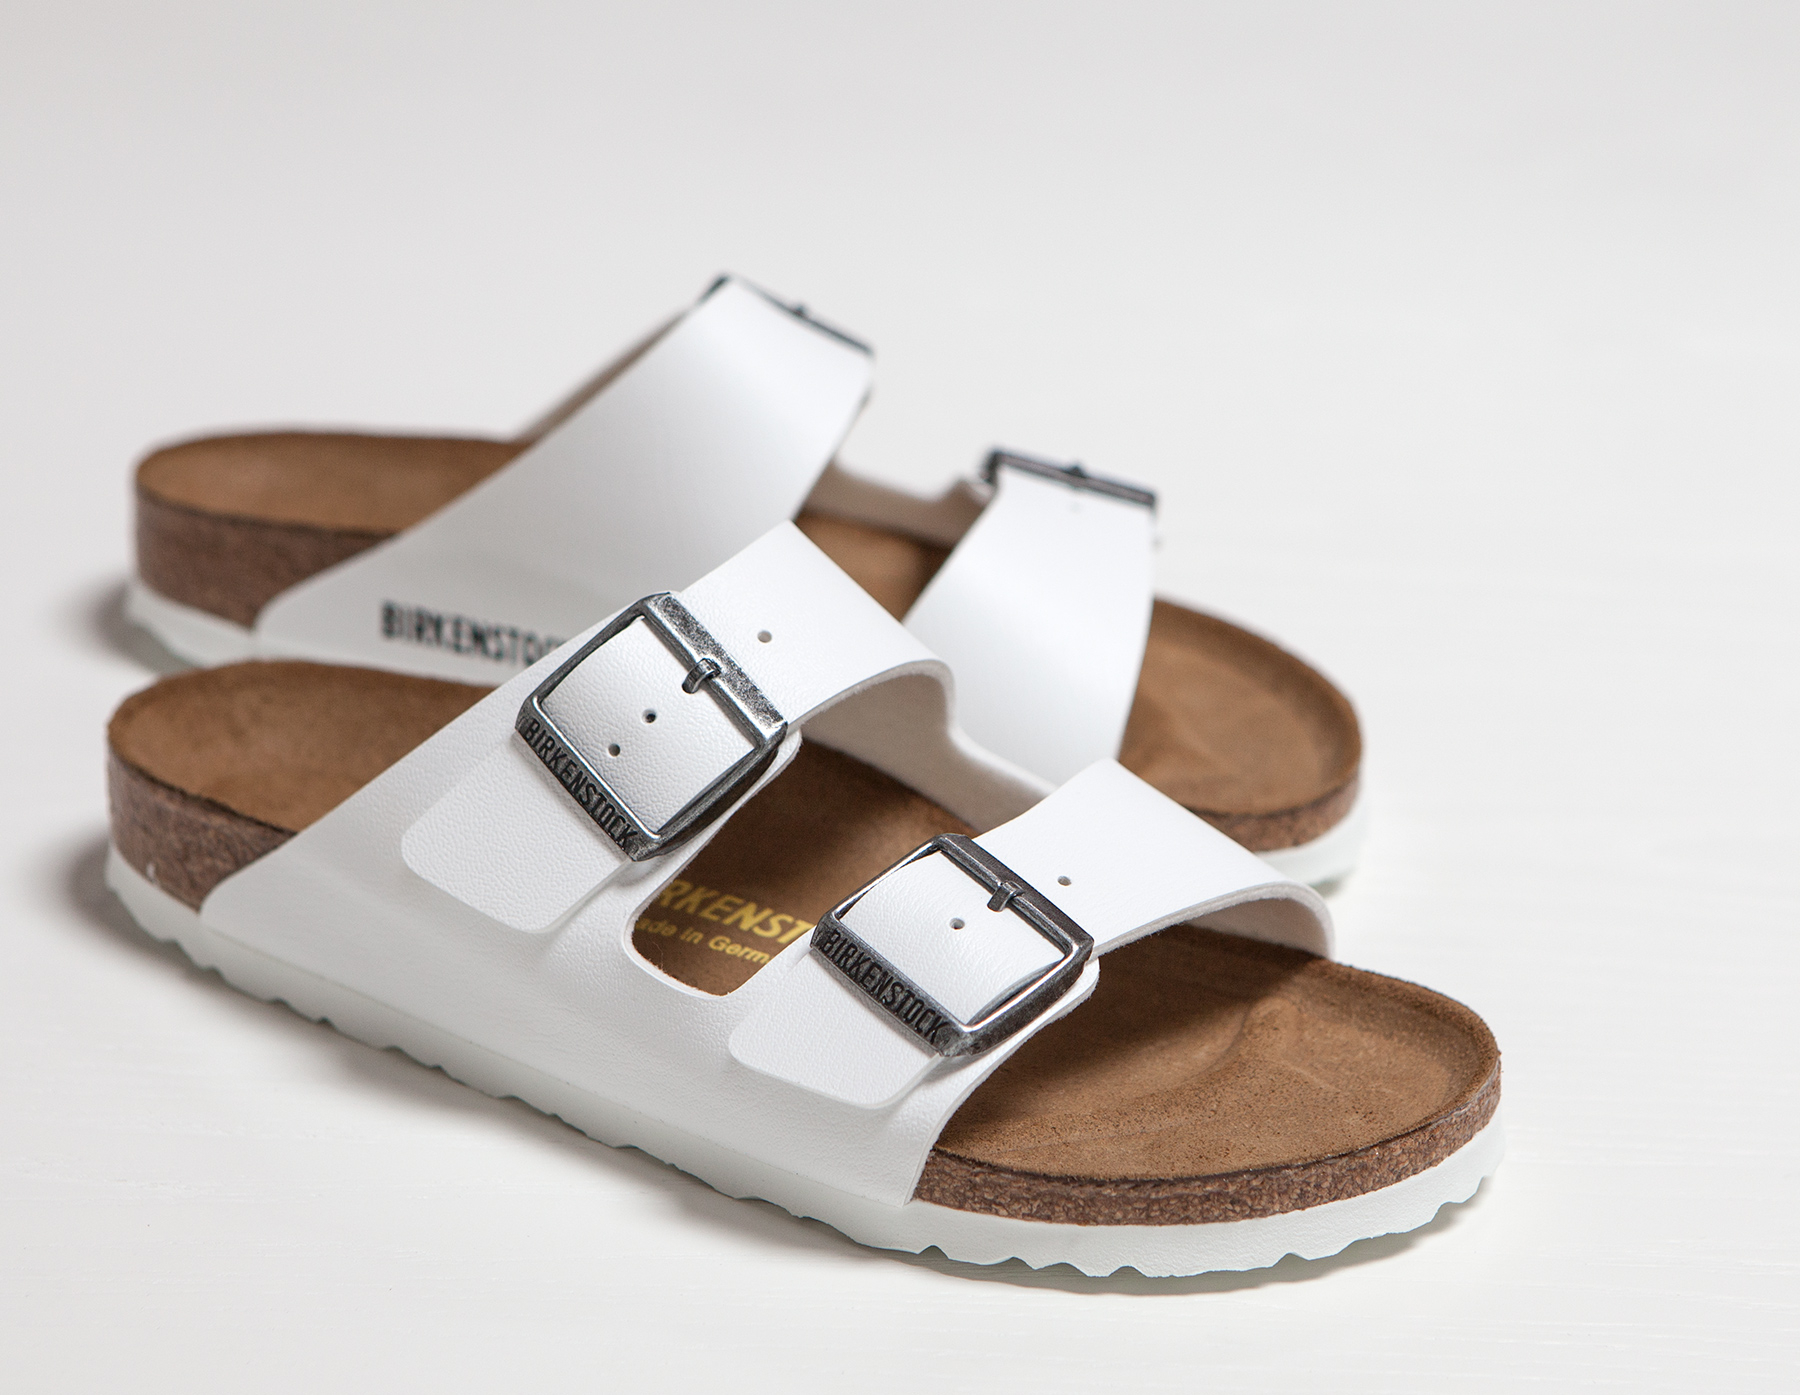 f4dd1fe52502a4 Lyst - James Perse Birkenstock Arizona Sandal - Mens in White for Men